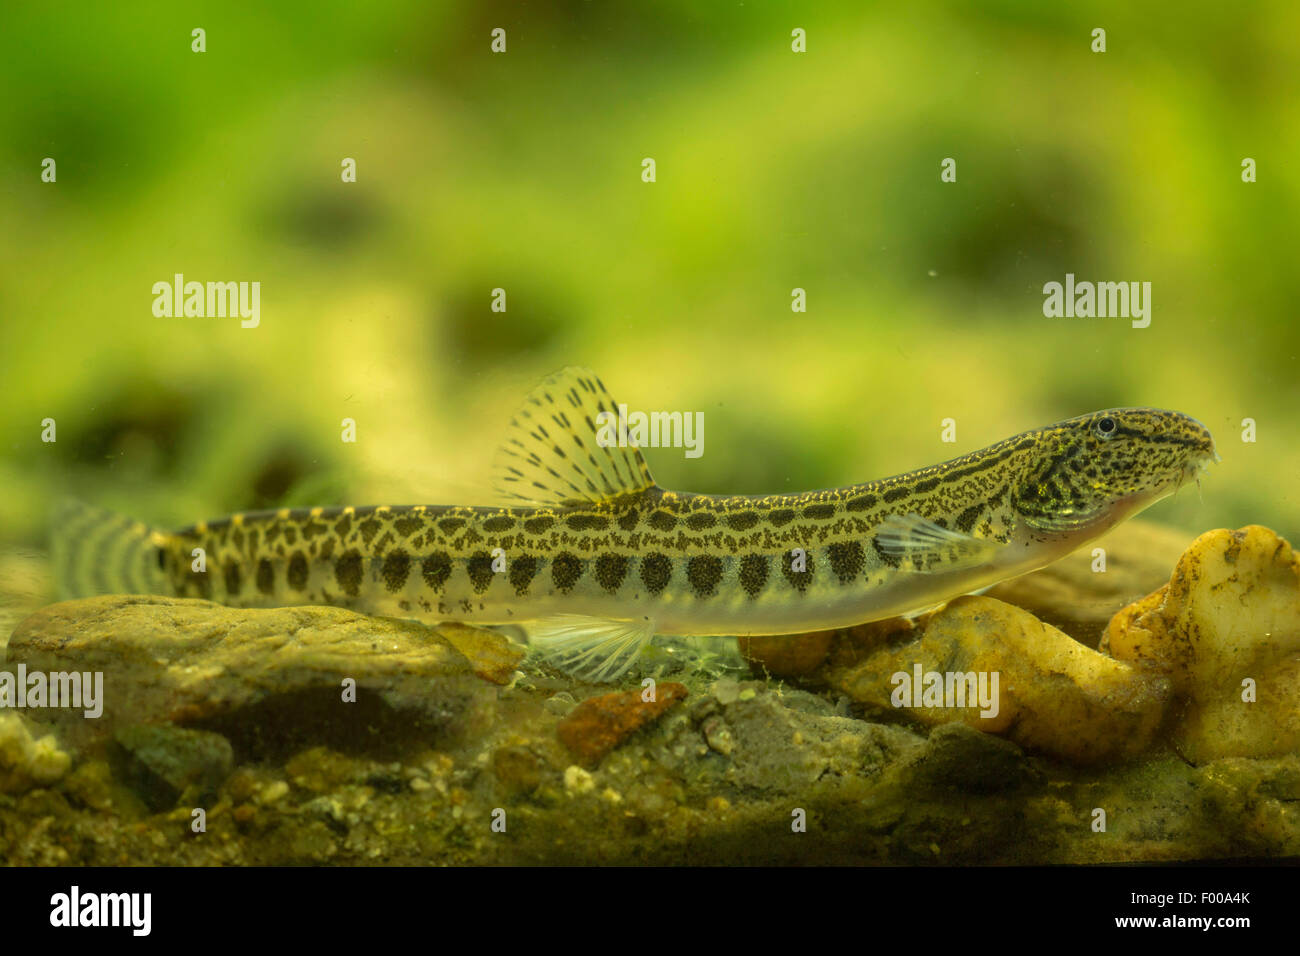 spined loach, spotted weatherfish (Cobitis taenia), on the bottom - Stock Image